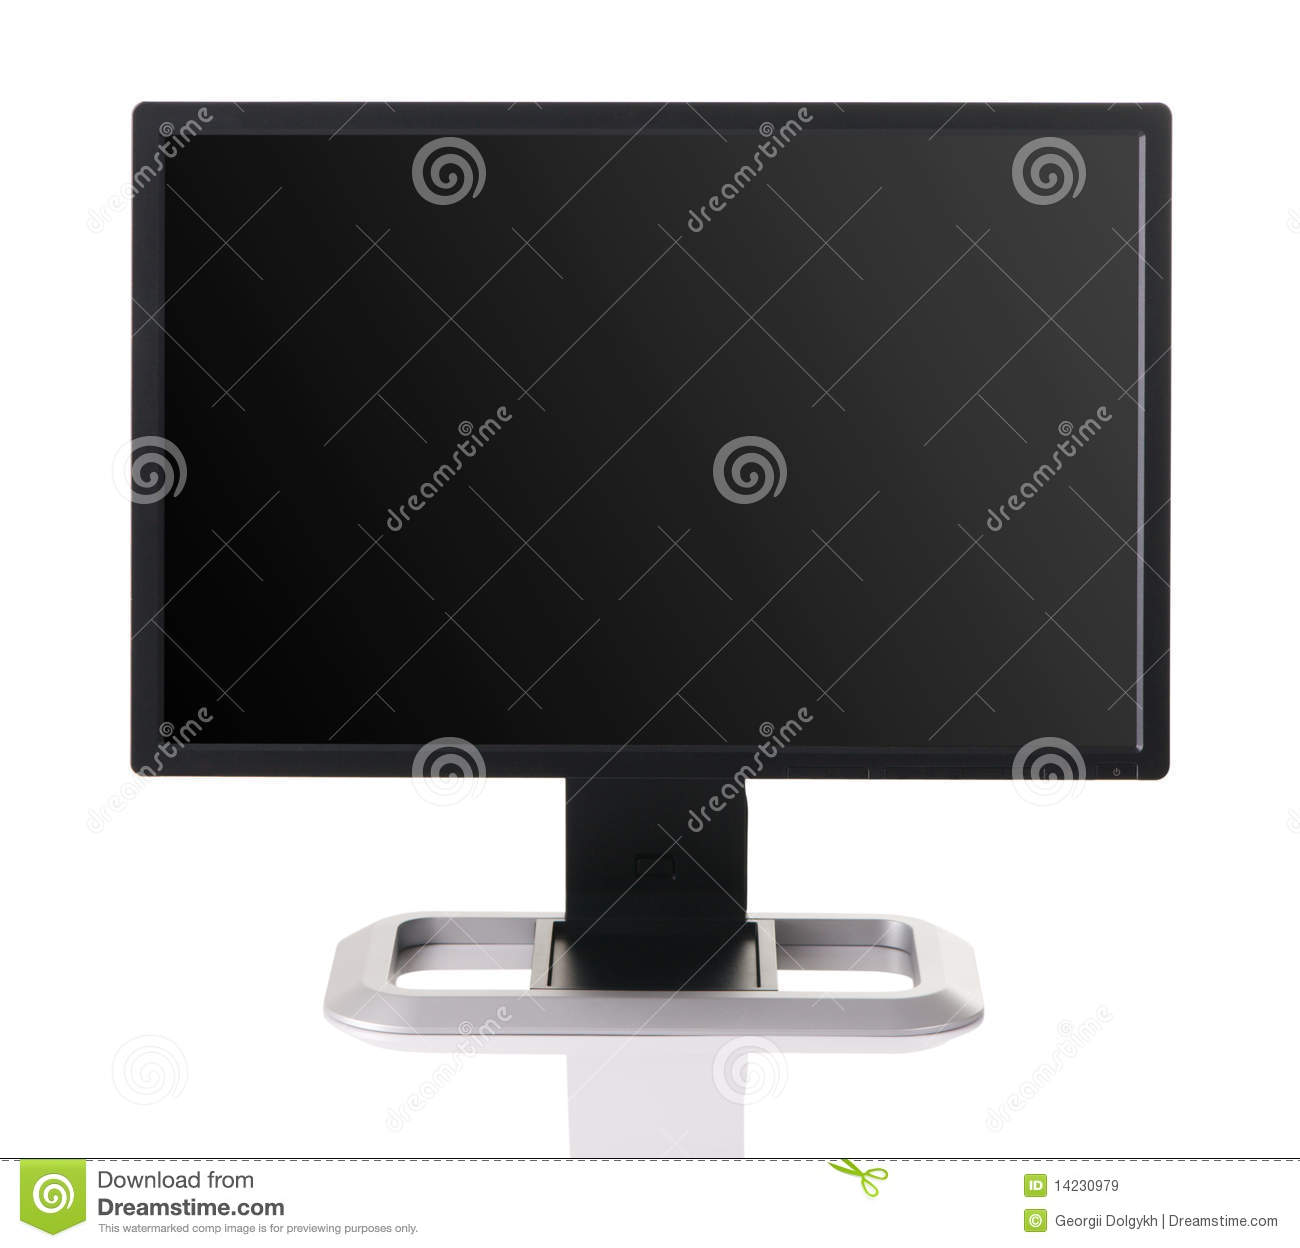 how to get white screen on monitor